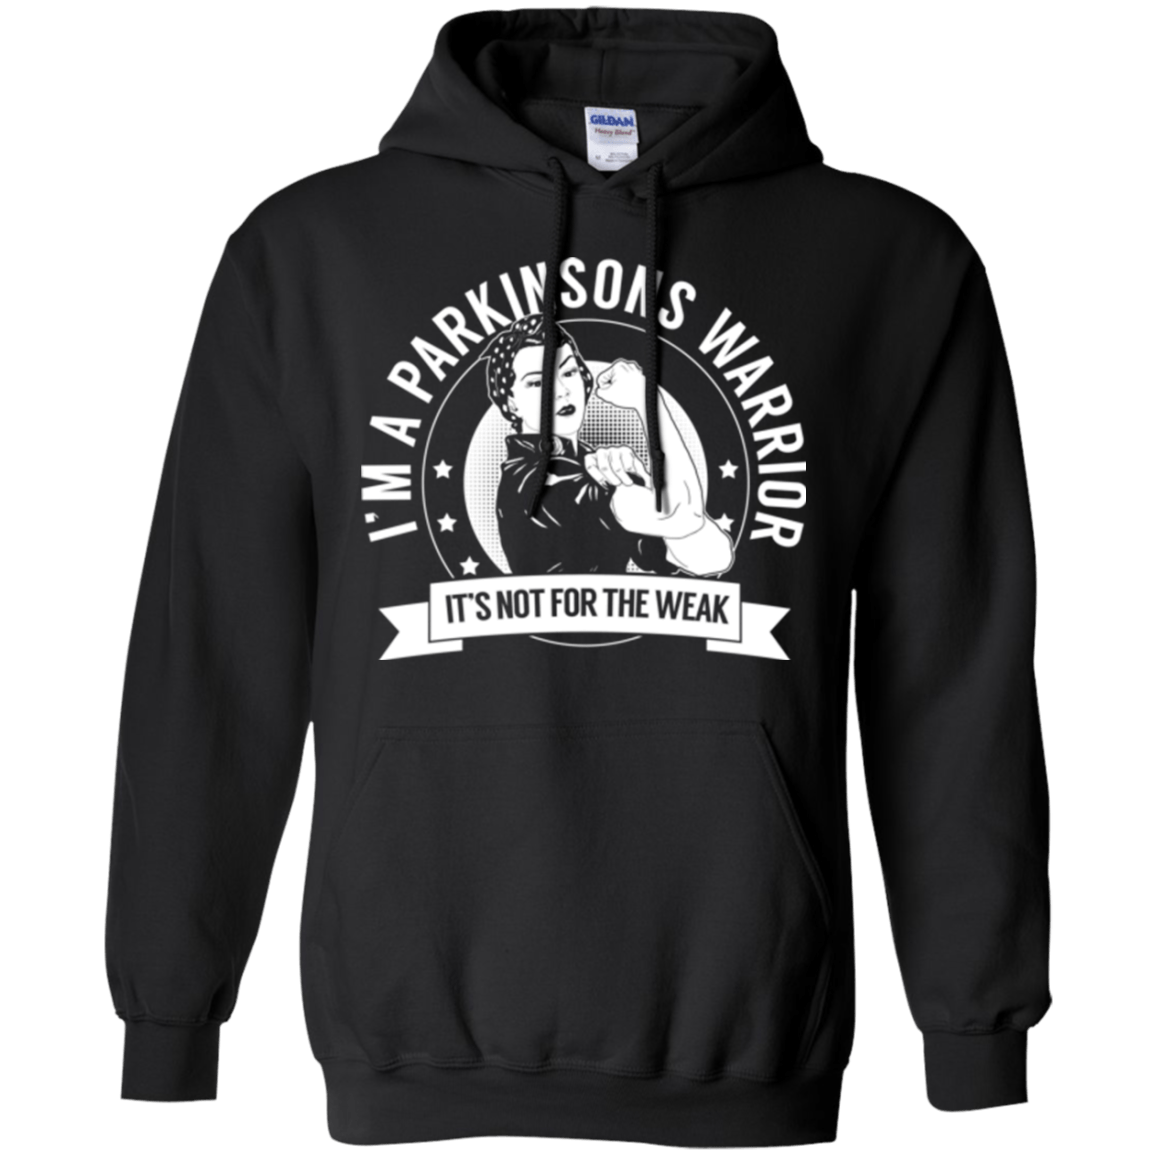 Parkinson's Warrior Not For The Weak Pullover Hoodie 8 oz. - The Unchargeables